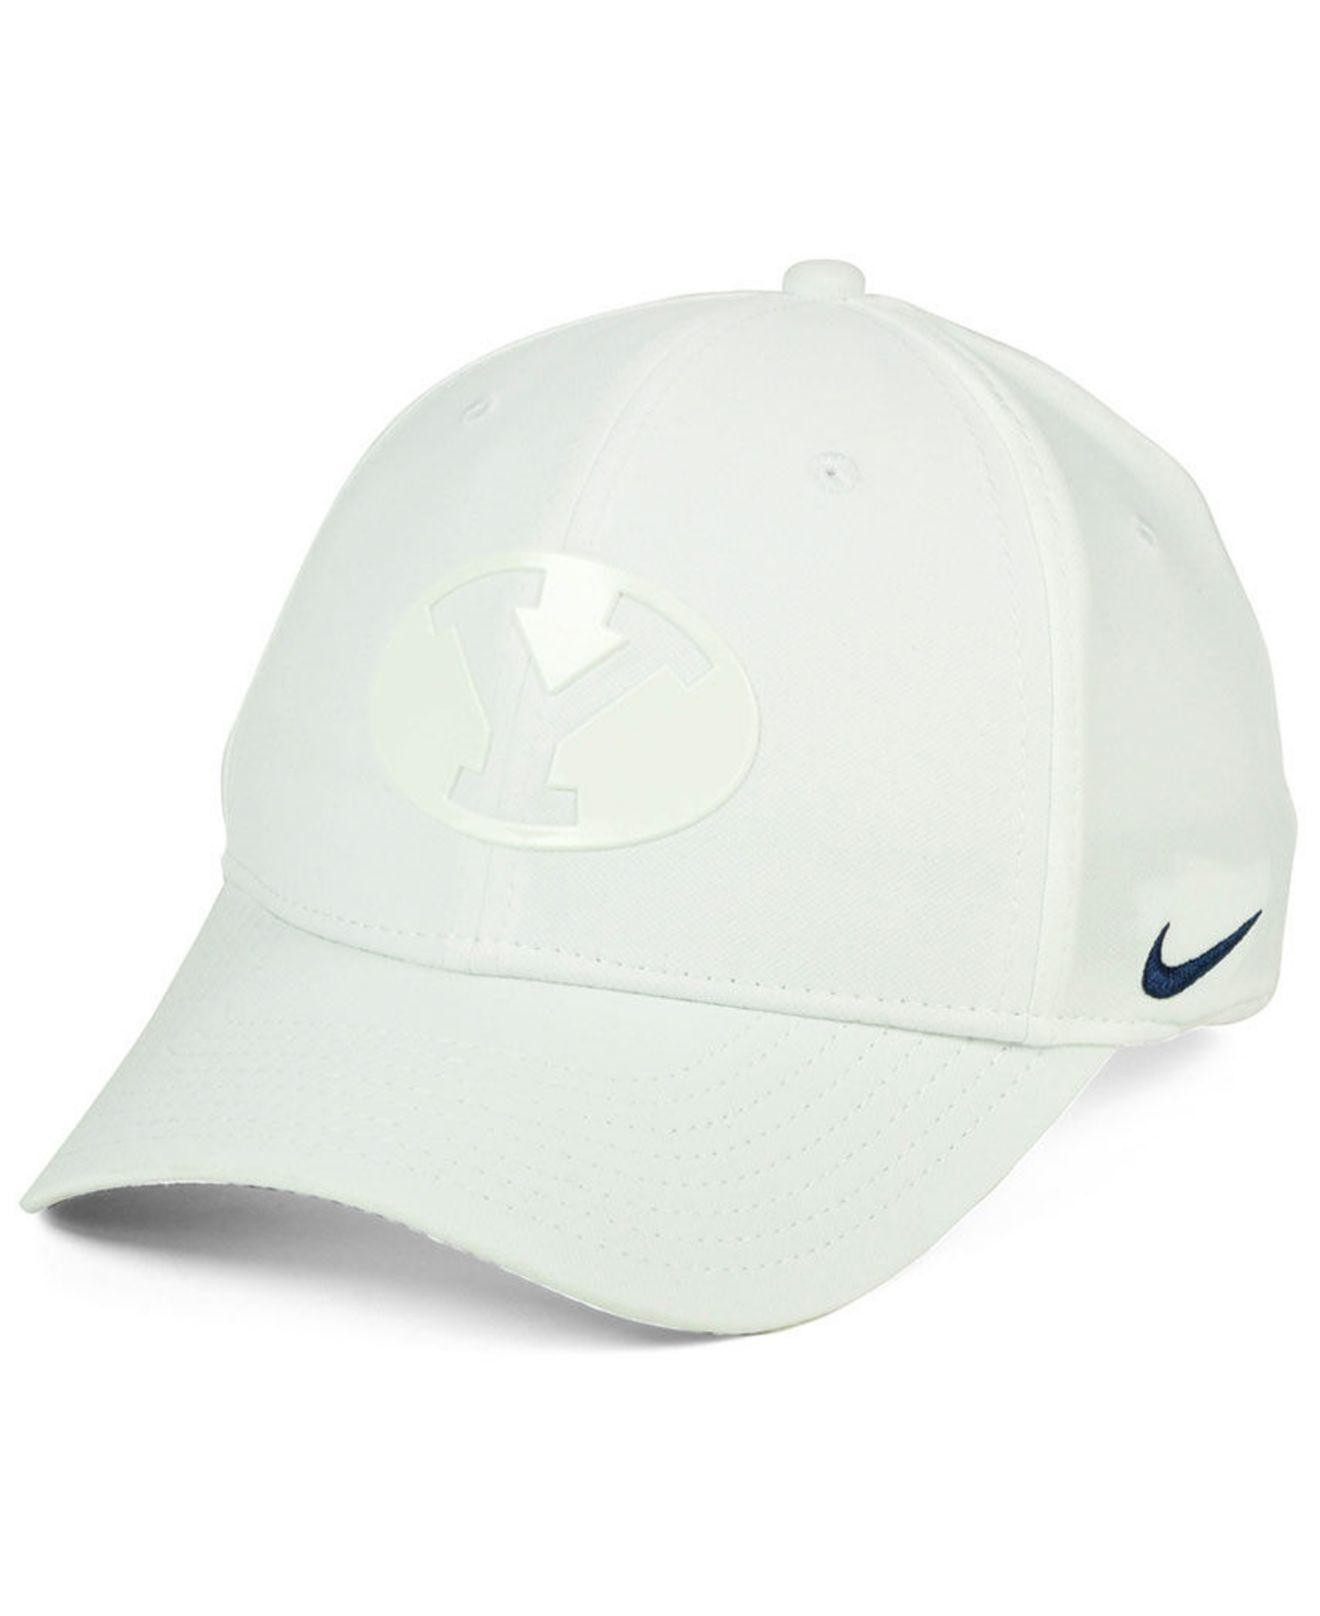 7031e00aa45 Lyst - Nike Brigham Young Cougars Col Cap in White for Men